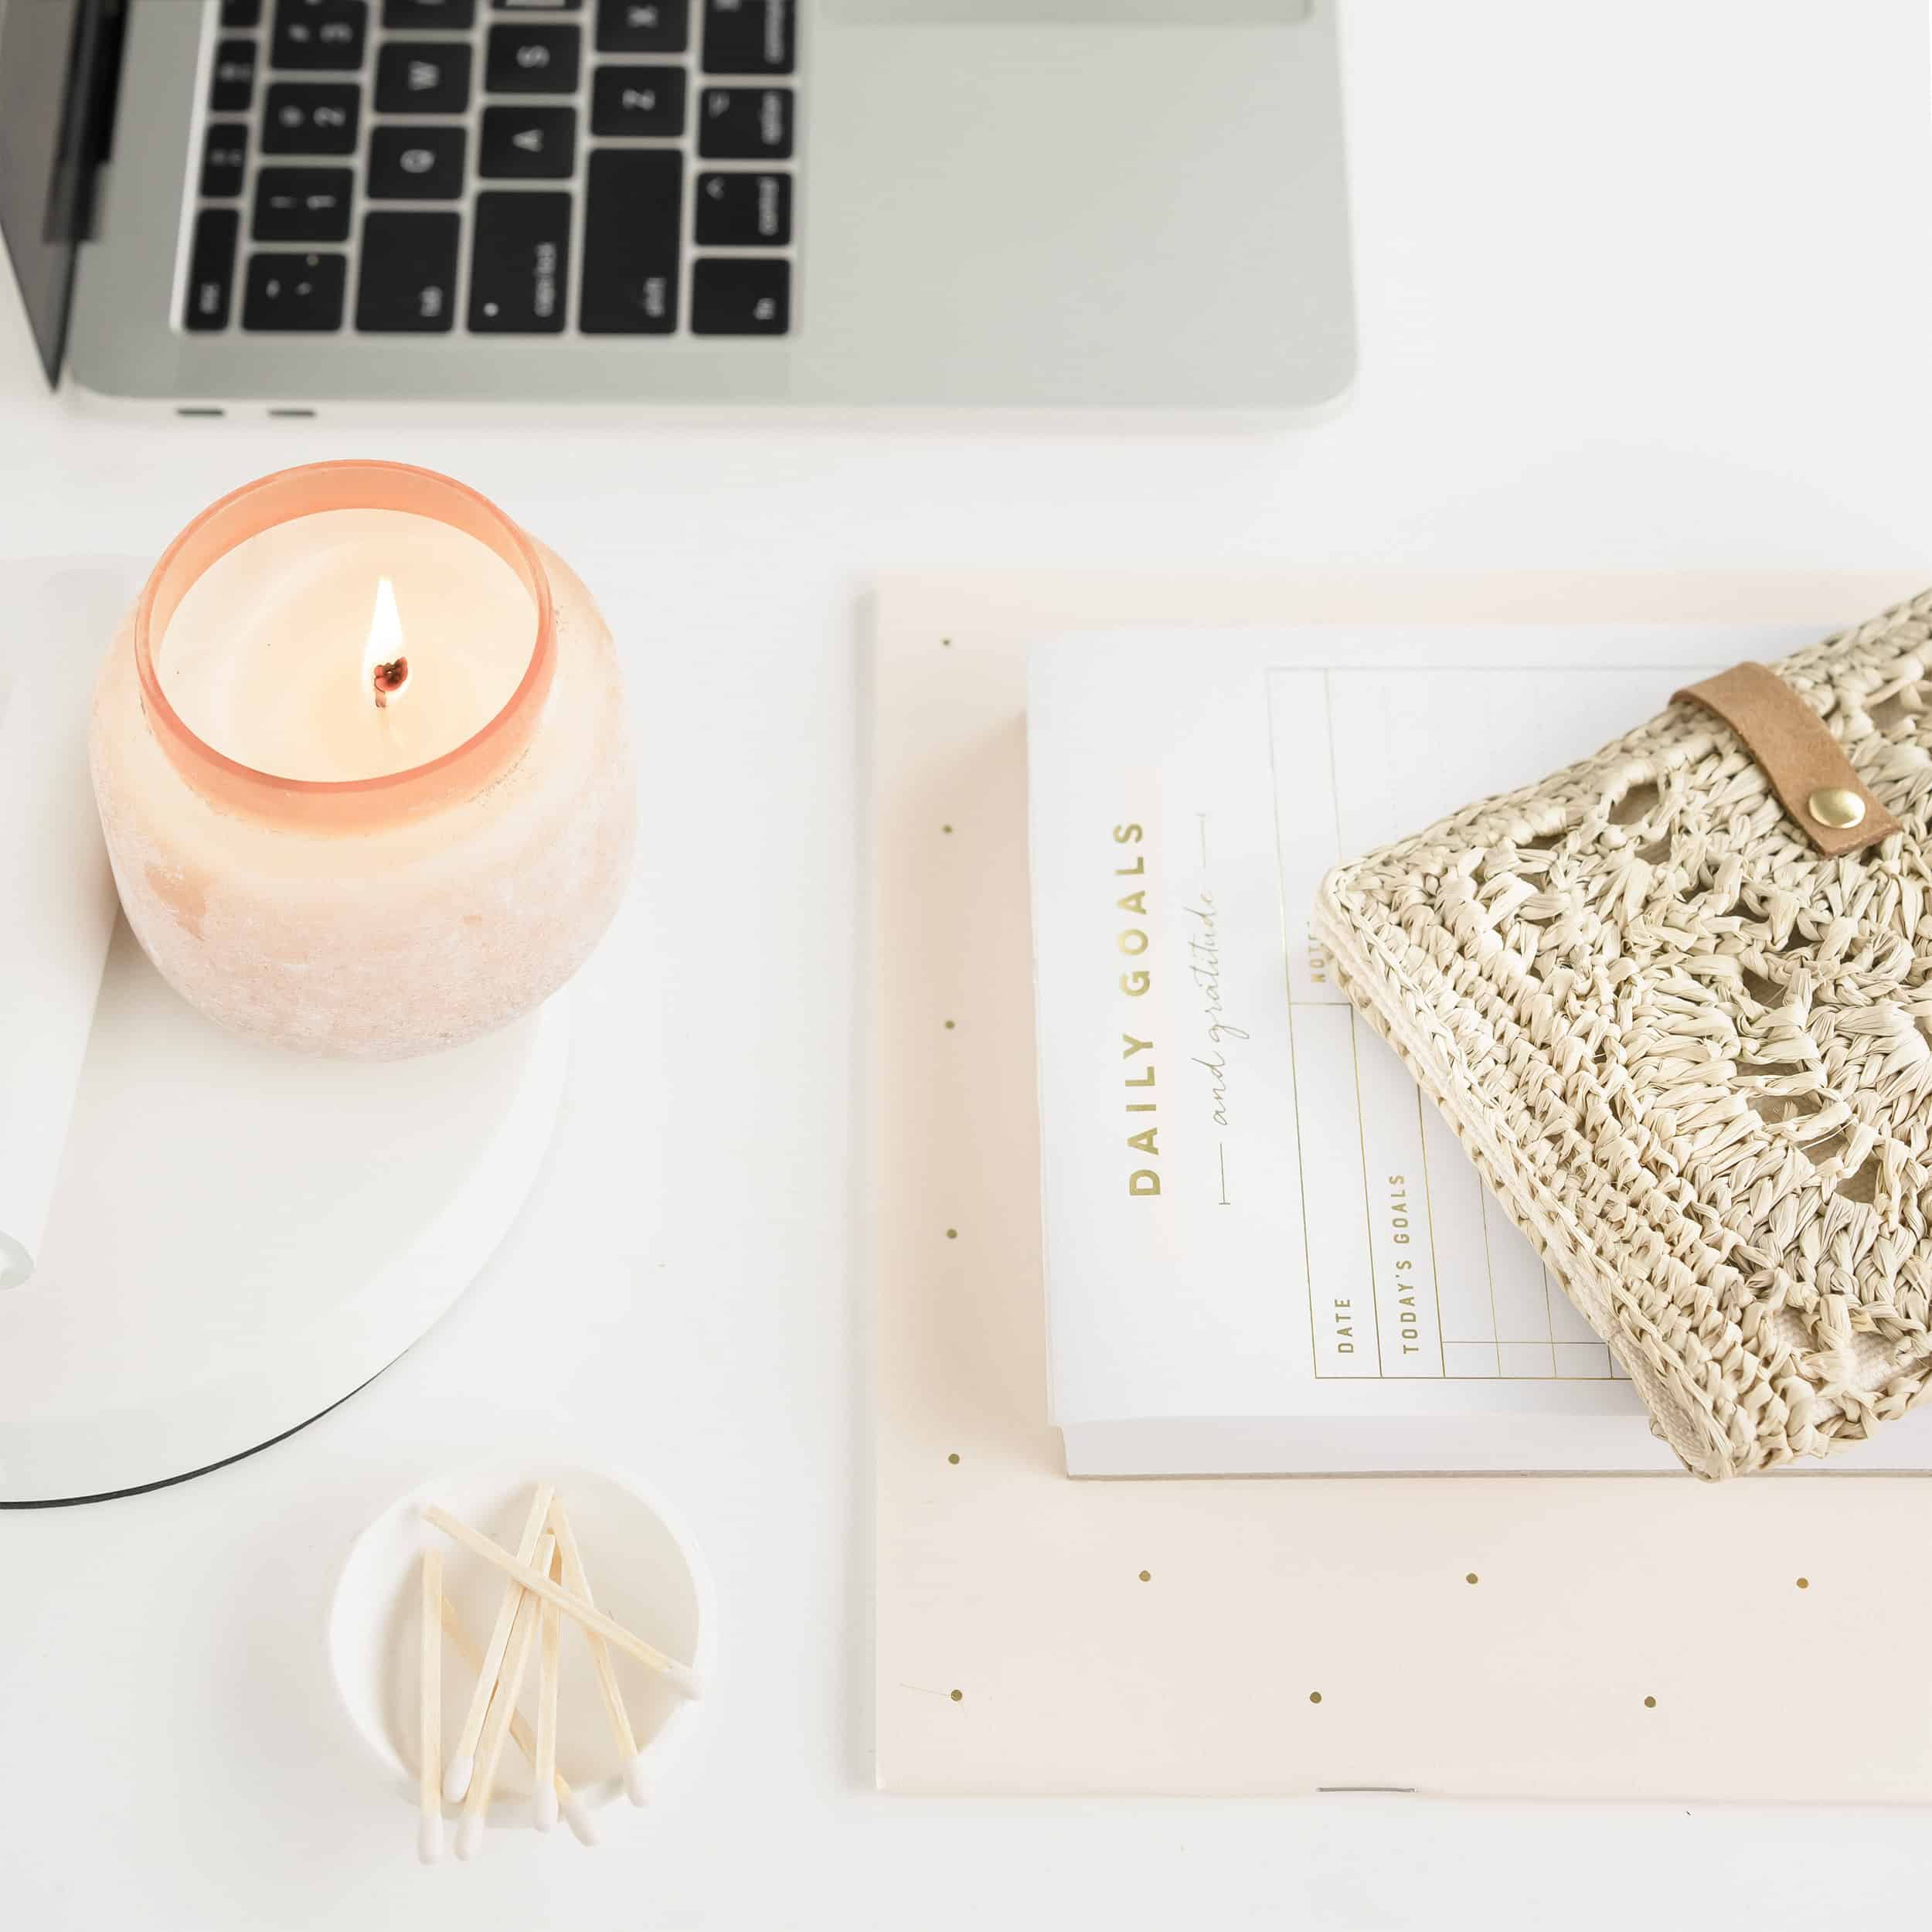 Neutral desktop with candle peaceful, tranquil, journal, goals